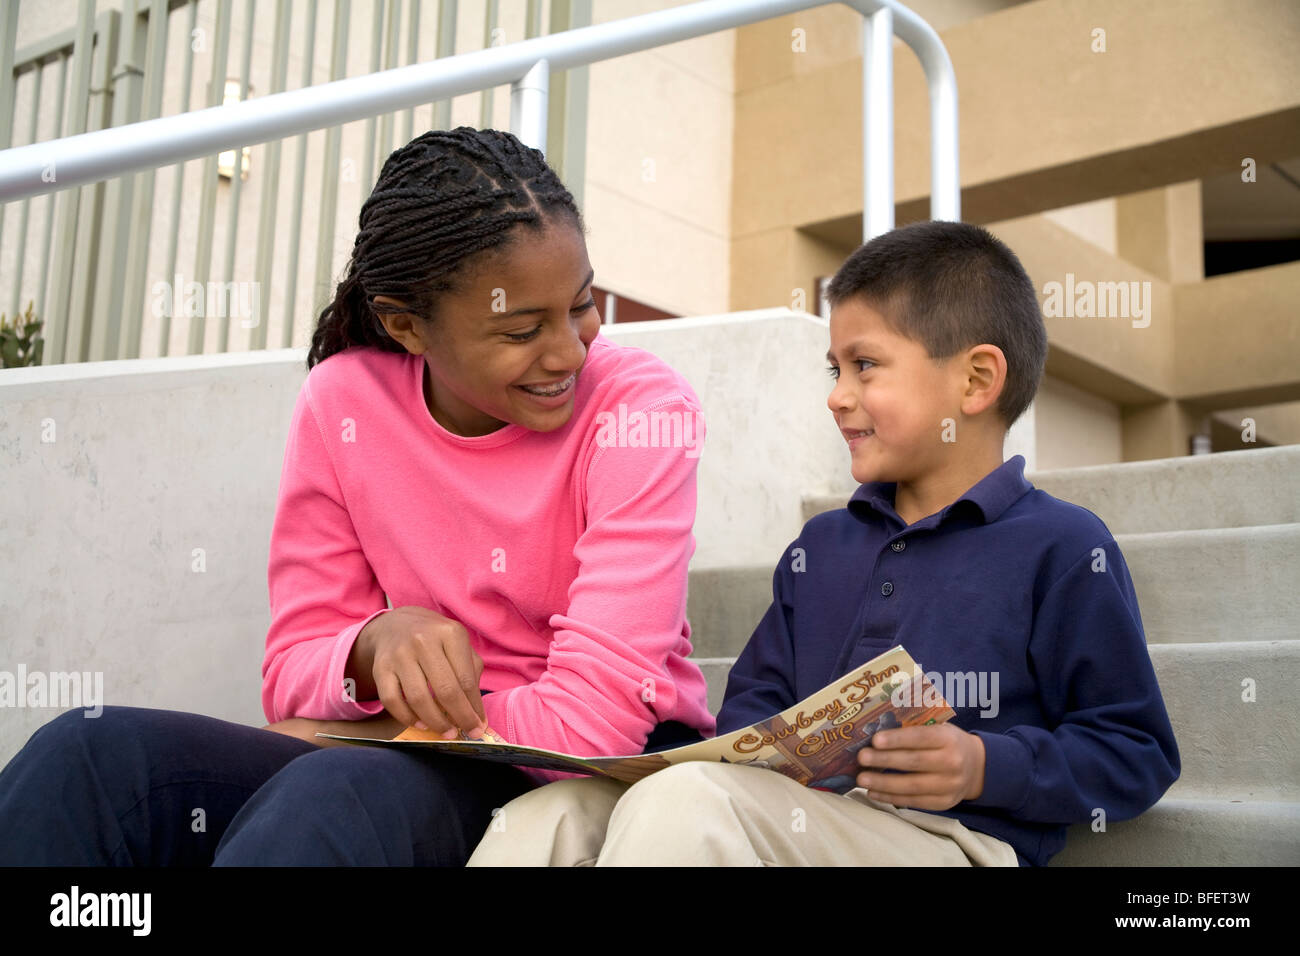 Older teenage girl reads a book talks smiling smiles encouraging encouragement boy 5-6 years old United States MR - Stock Image